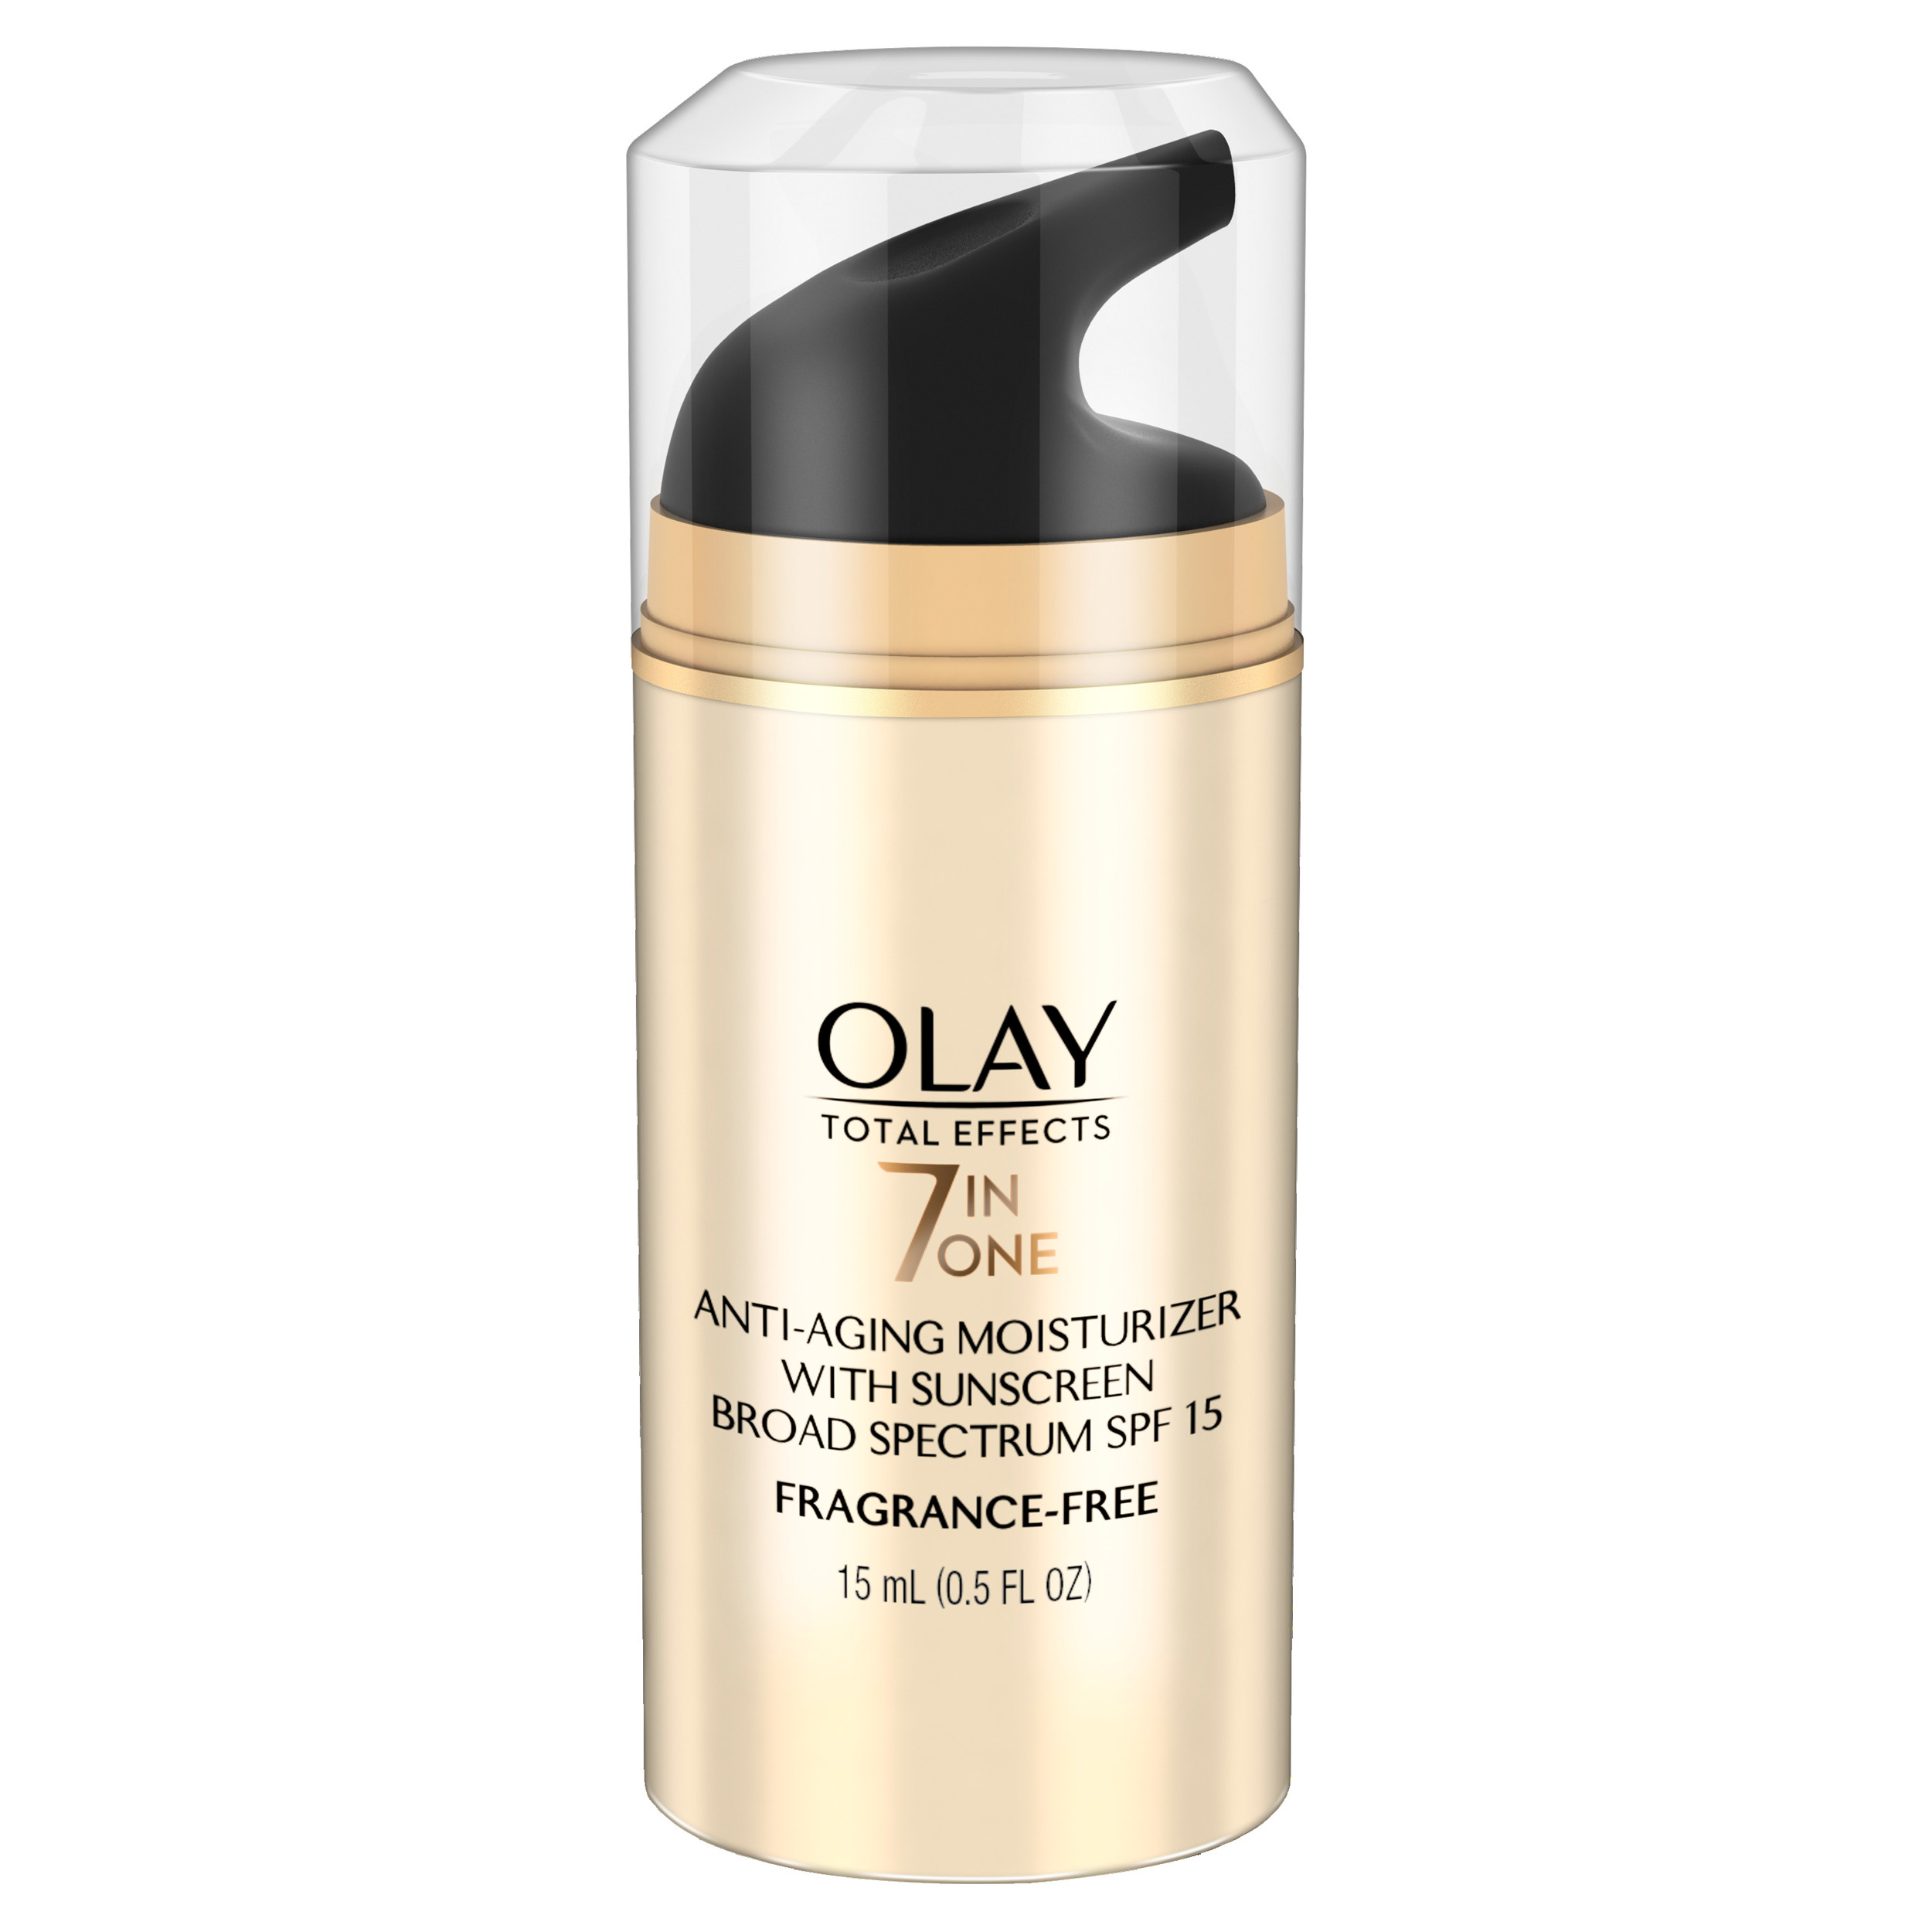 Olay Total Effects Anti-Aging Face Moisturizer photo